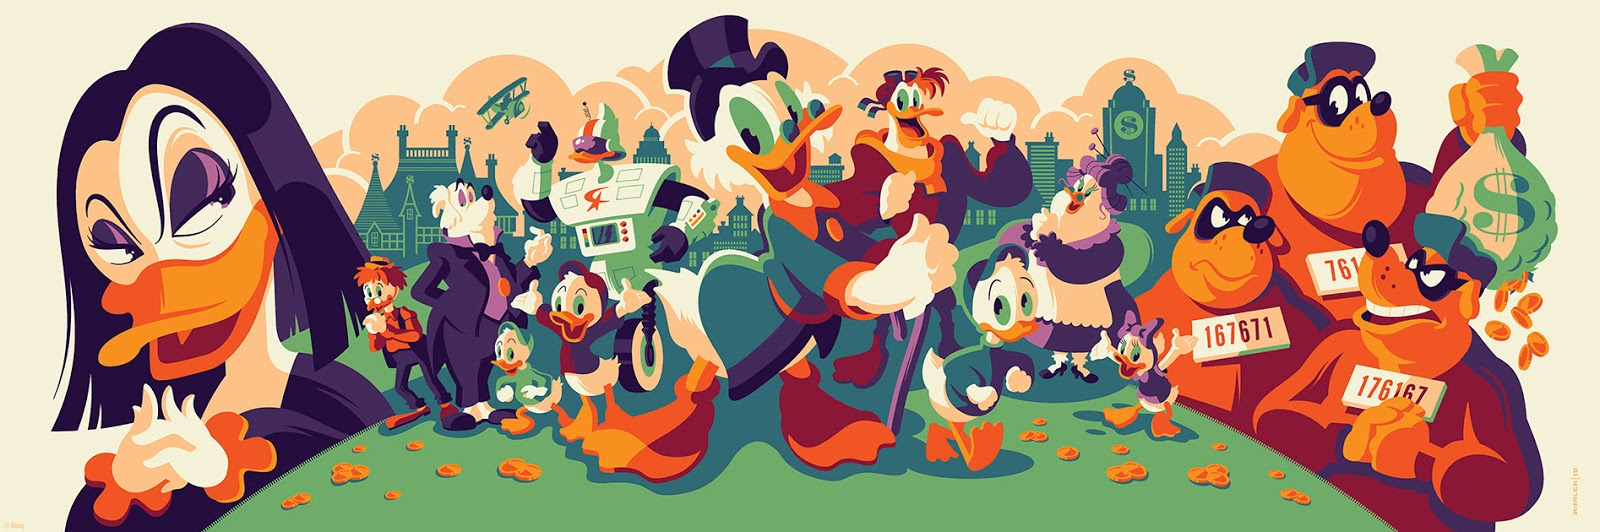 DuckTales Magica De Spell Edition Screen Print By Tom Whalen X Cyclops Works Gallery